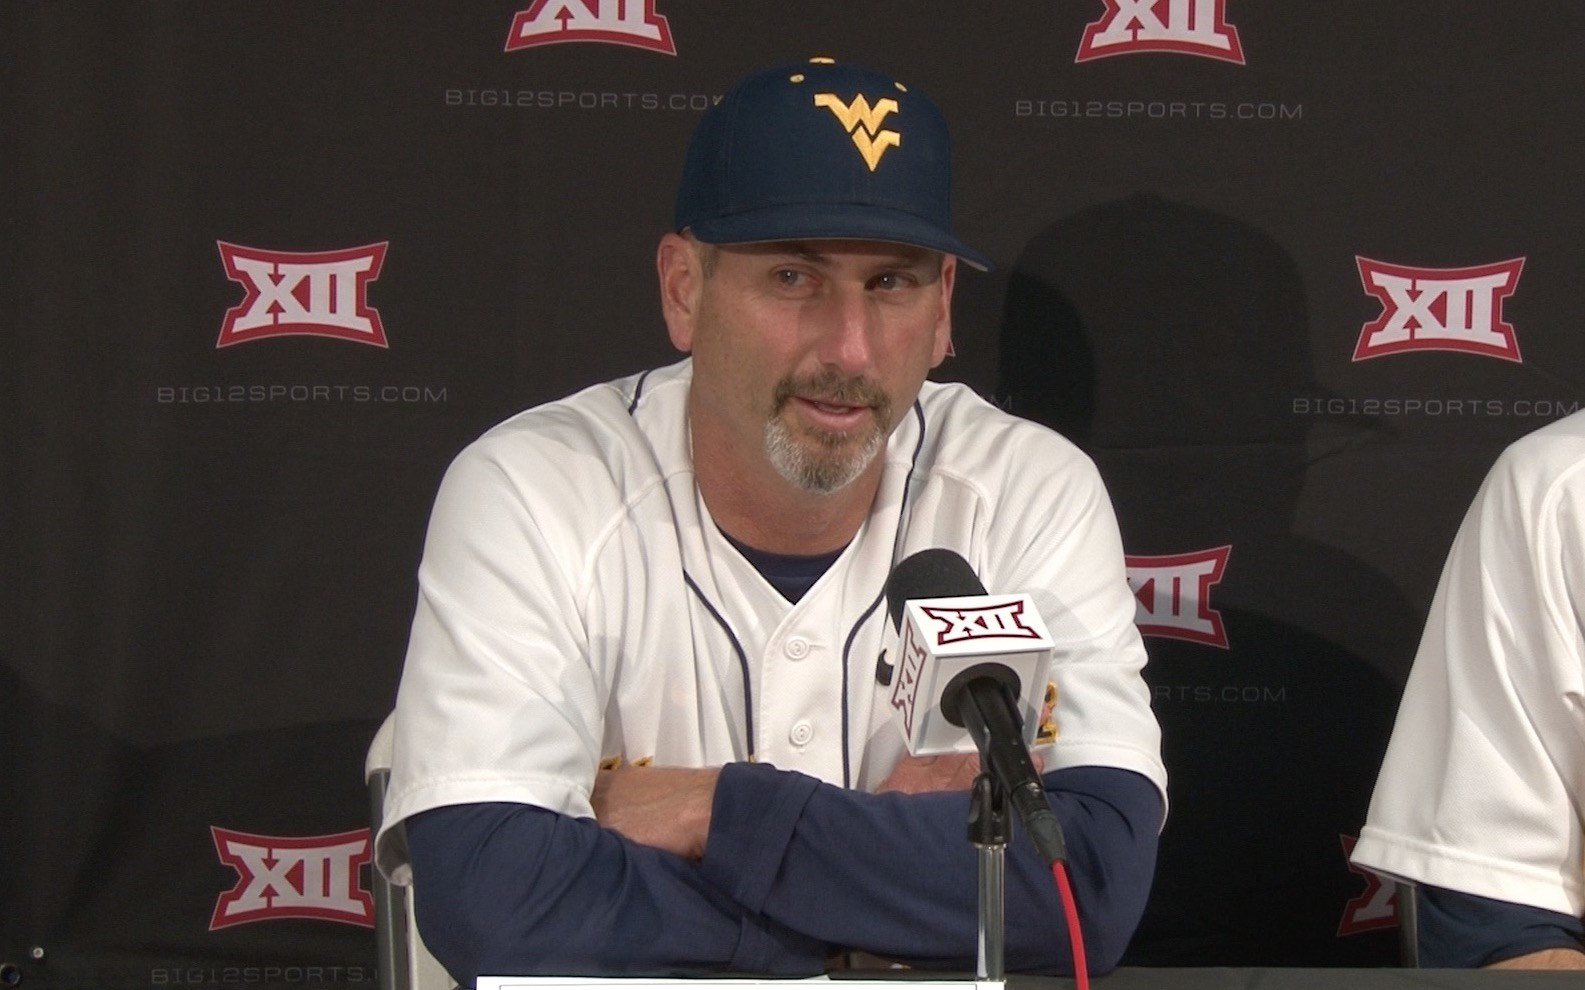 Coach Mazey speaks with the media following Wednesday's victory.